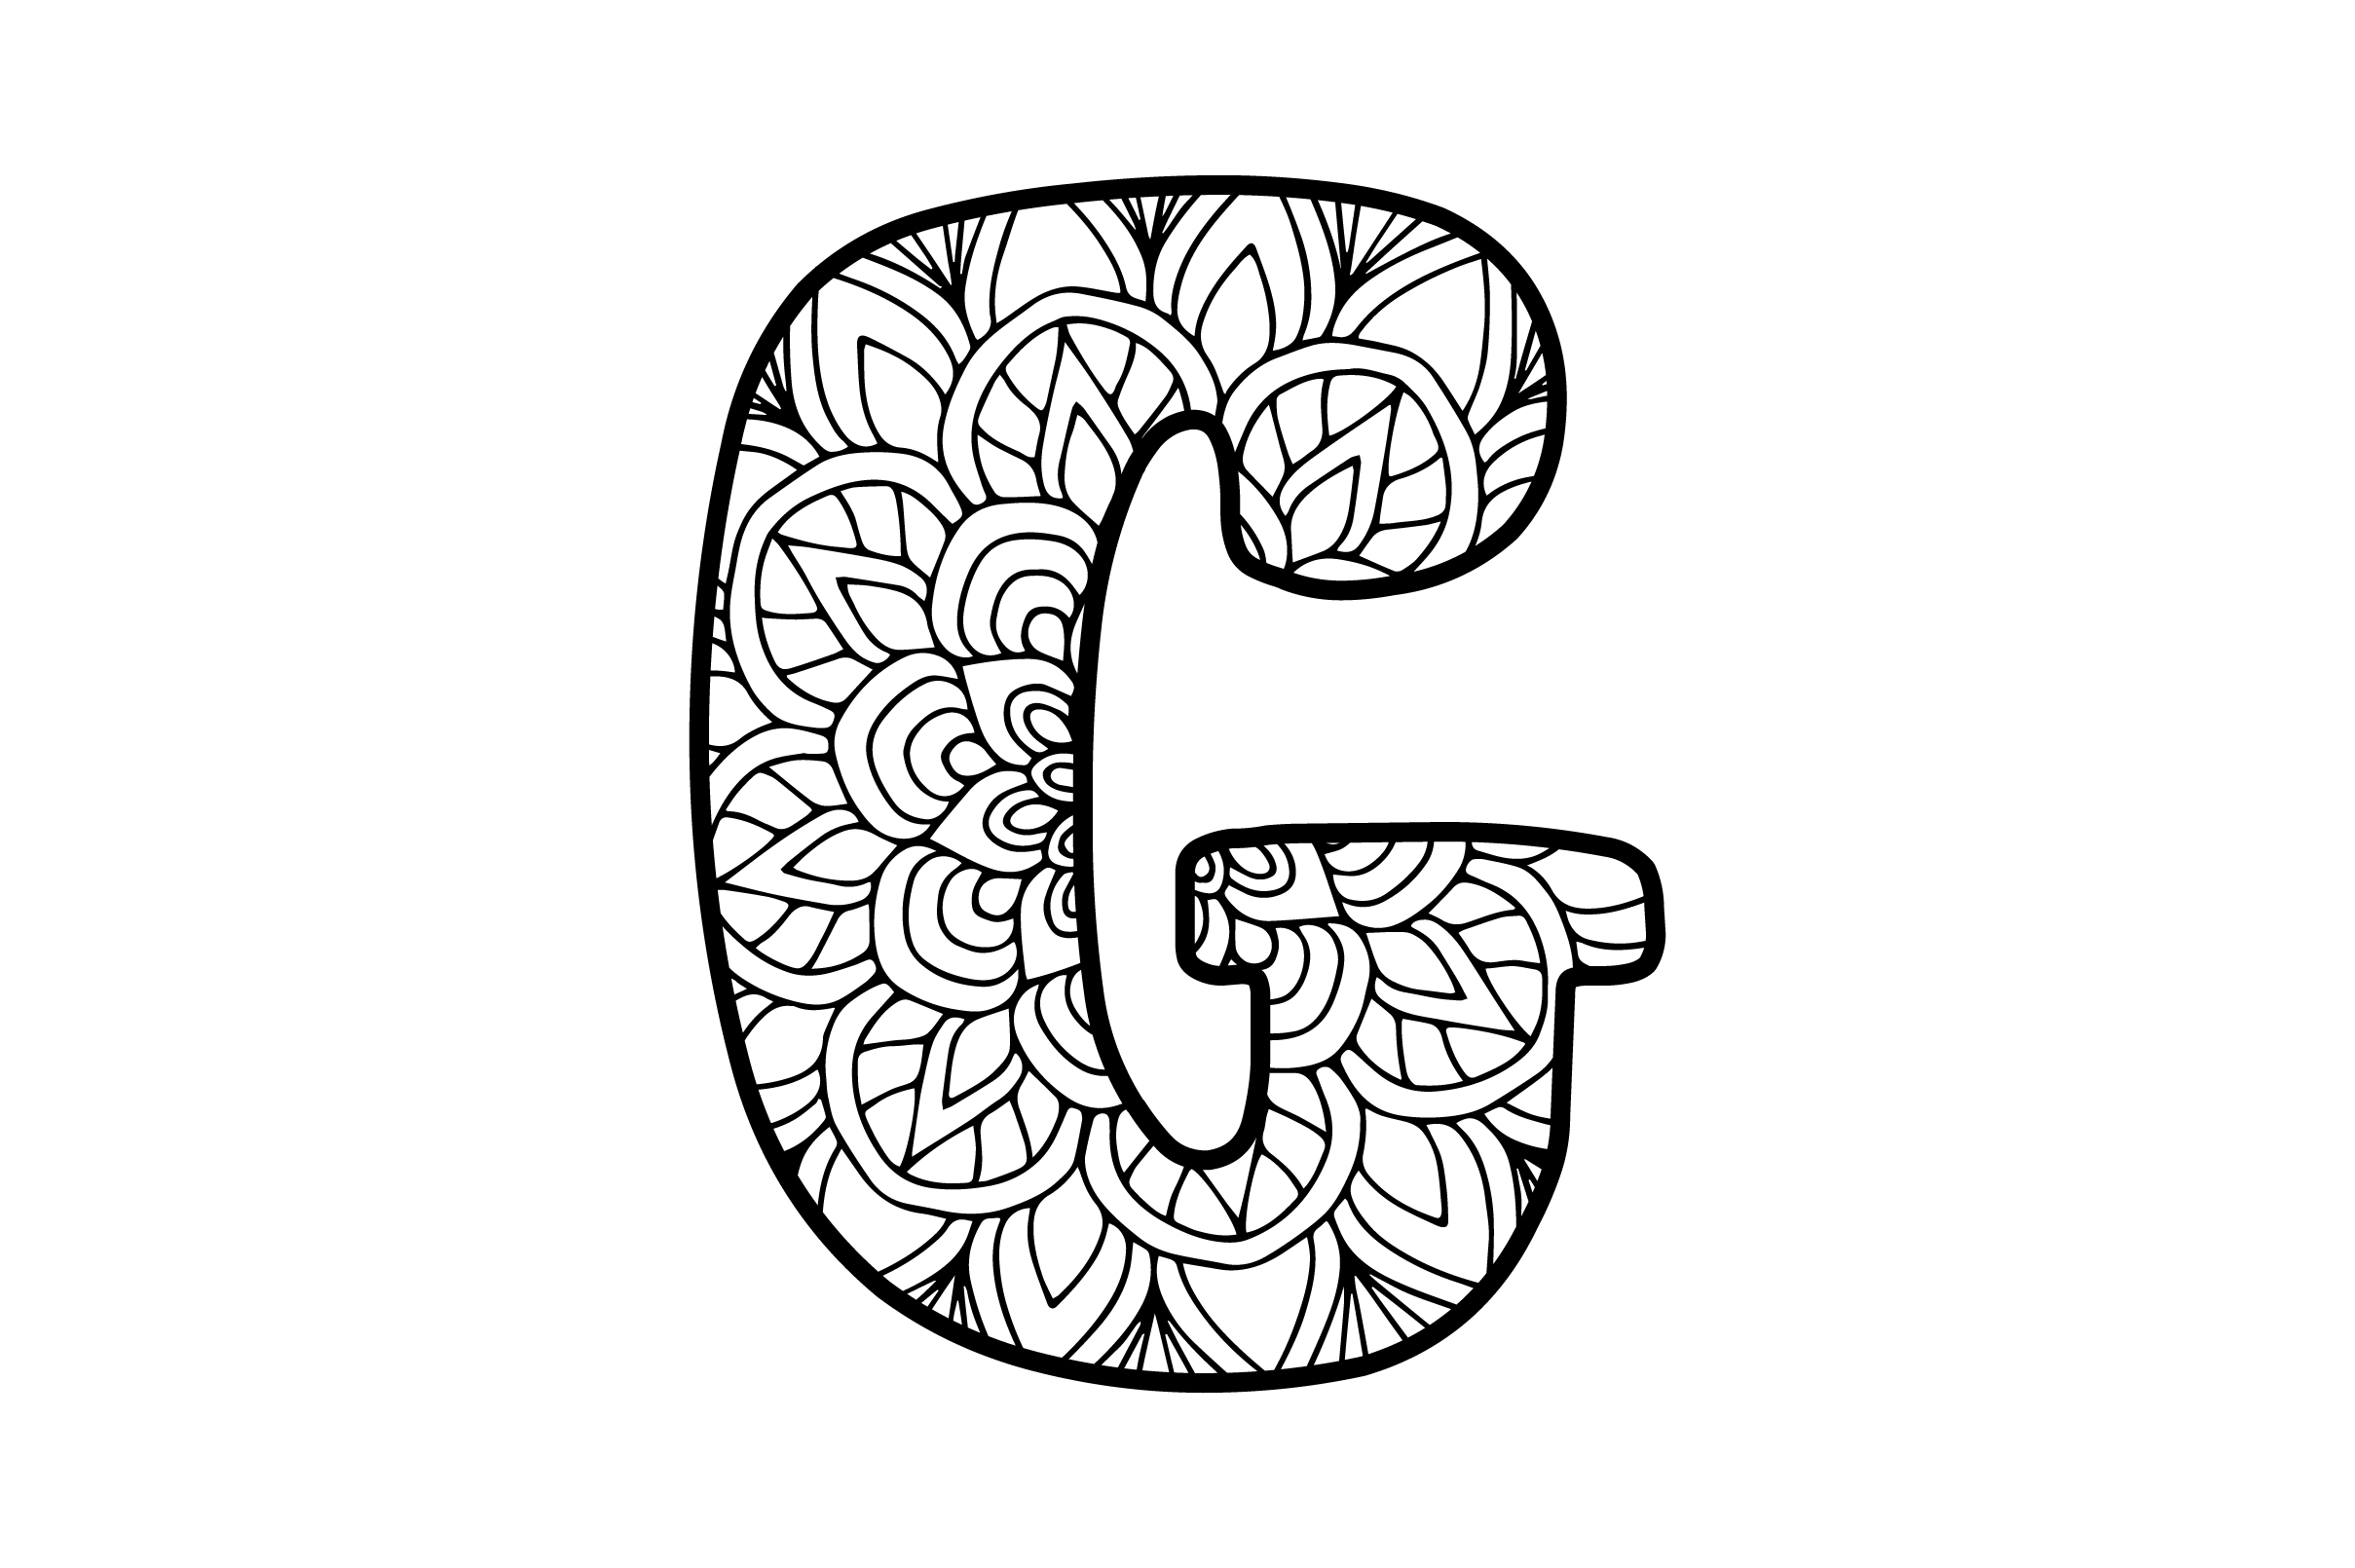 Download Free Mandala Alphabet G Svg Cut File By Creative Fabrica Crafts for Cricut Explore, Silhouette and other cutting machines.